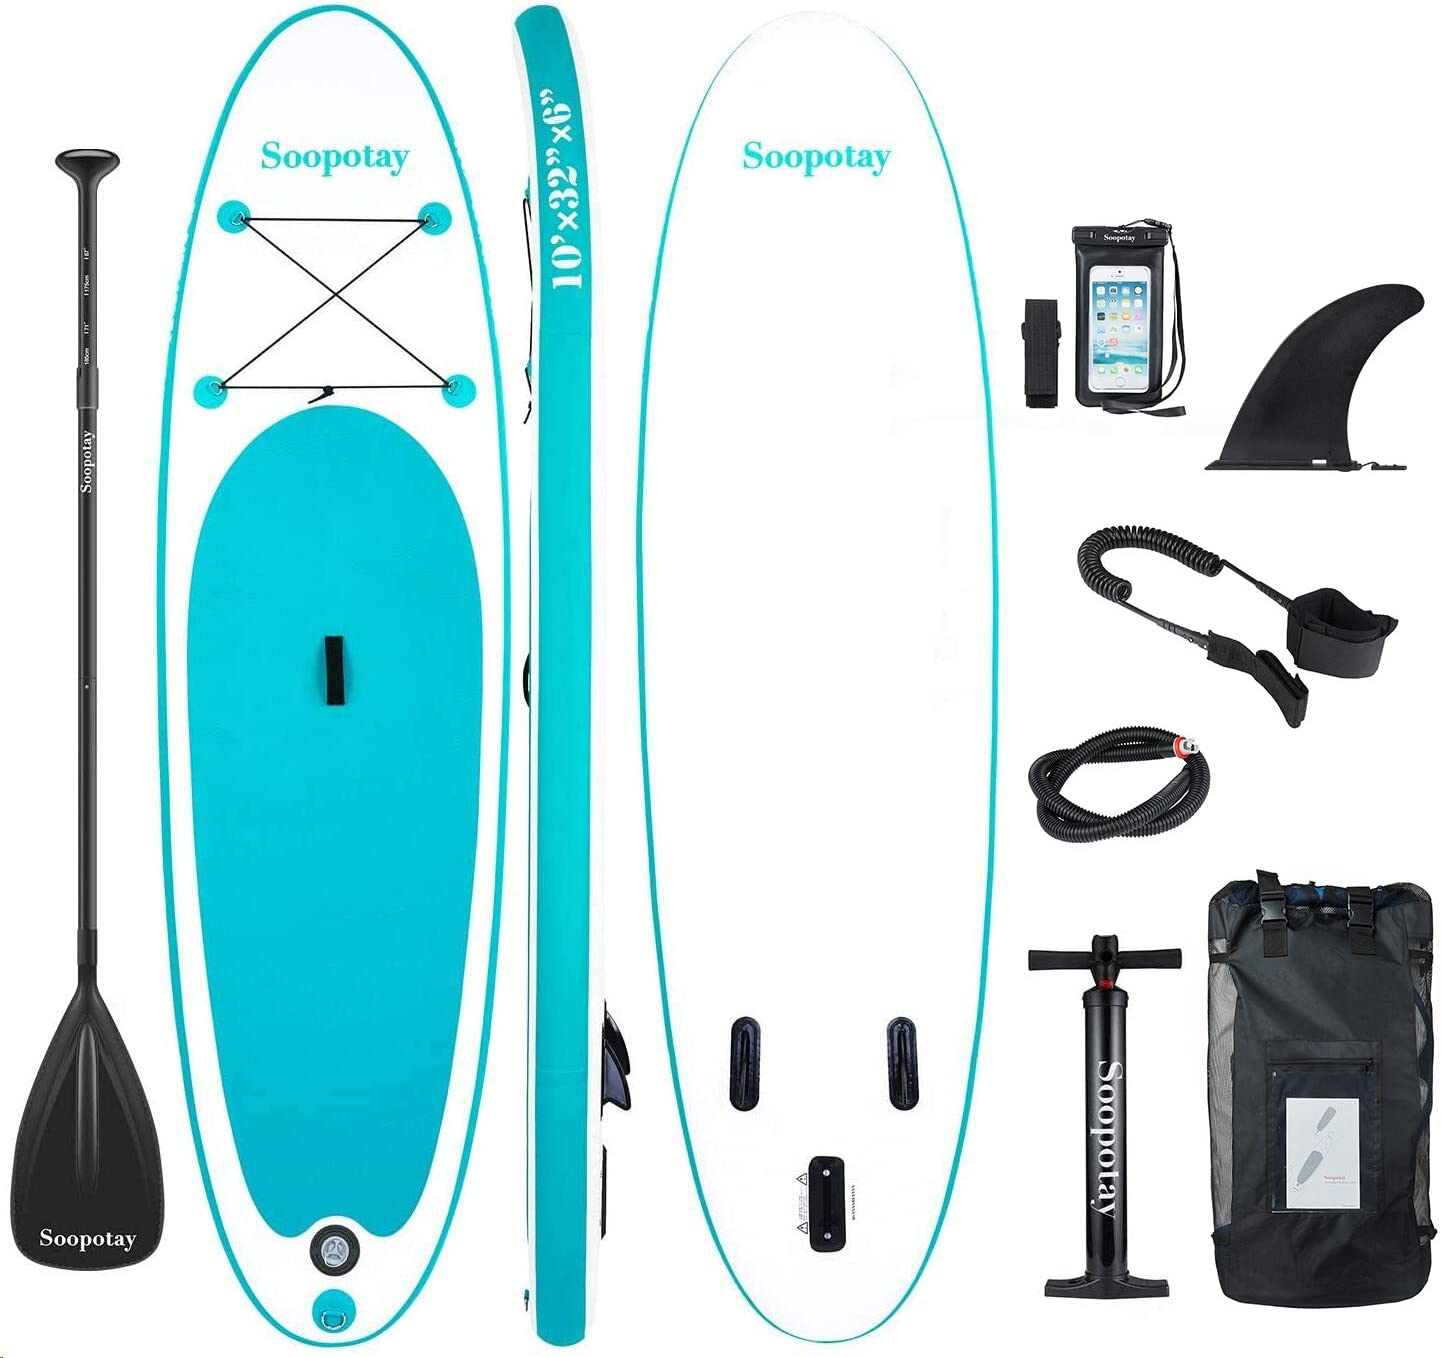 Soopotay Inflatable SUP Stand Up Paddle Board, Inflatable SUP Board, iSUP Package with All Accessories